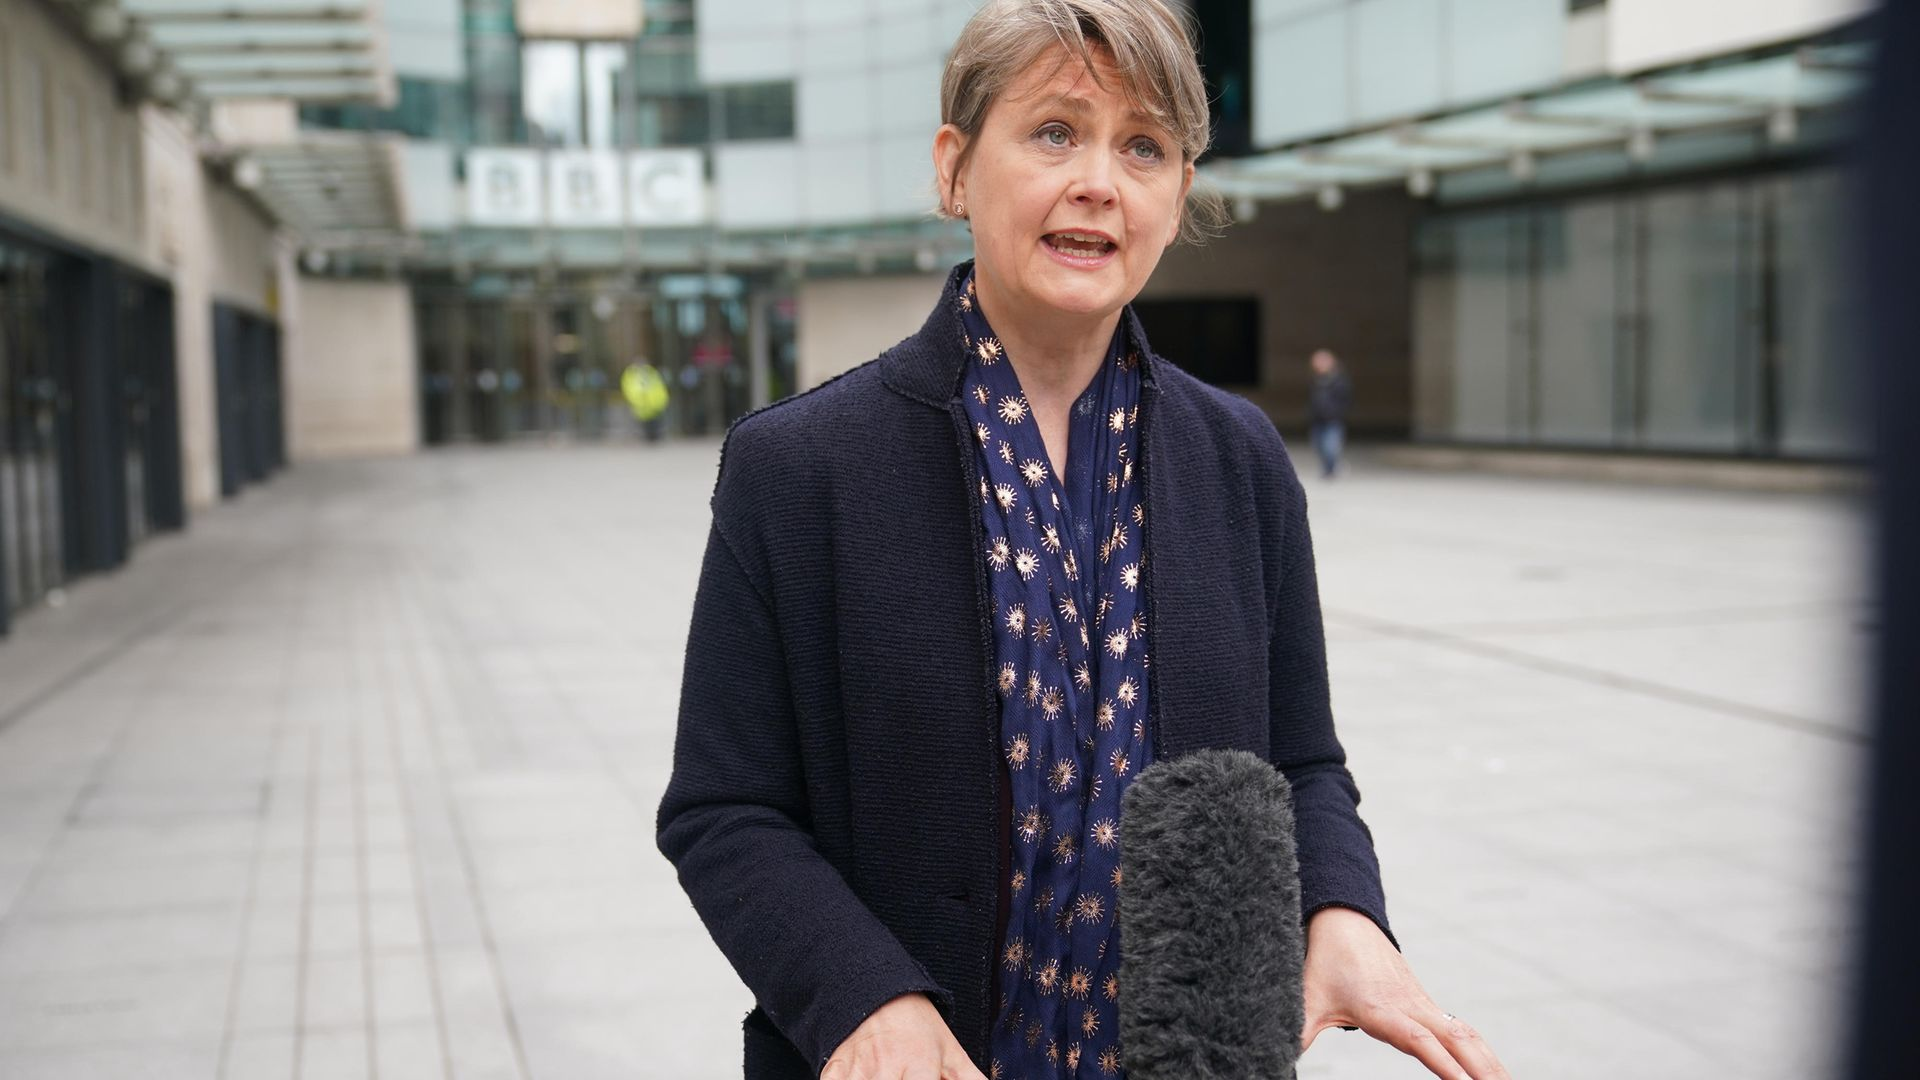 Labour MP and Chair of the Commons Home Affairs Committee Yvette Cooper during an interview outside BBC Broadcasting House - Credit: PA